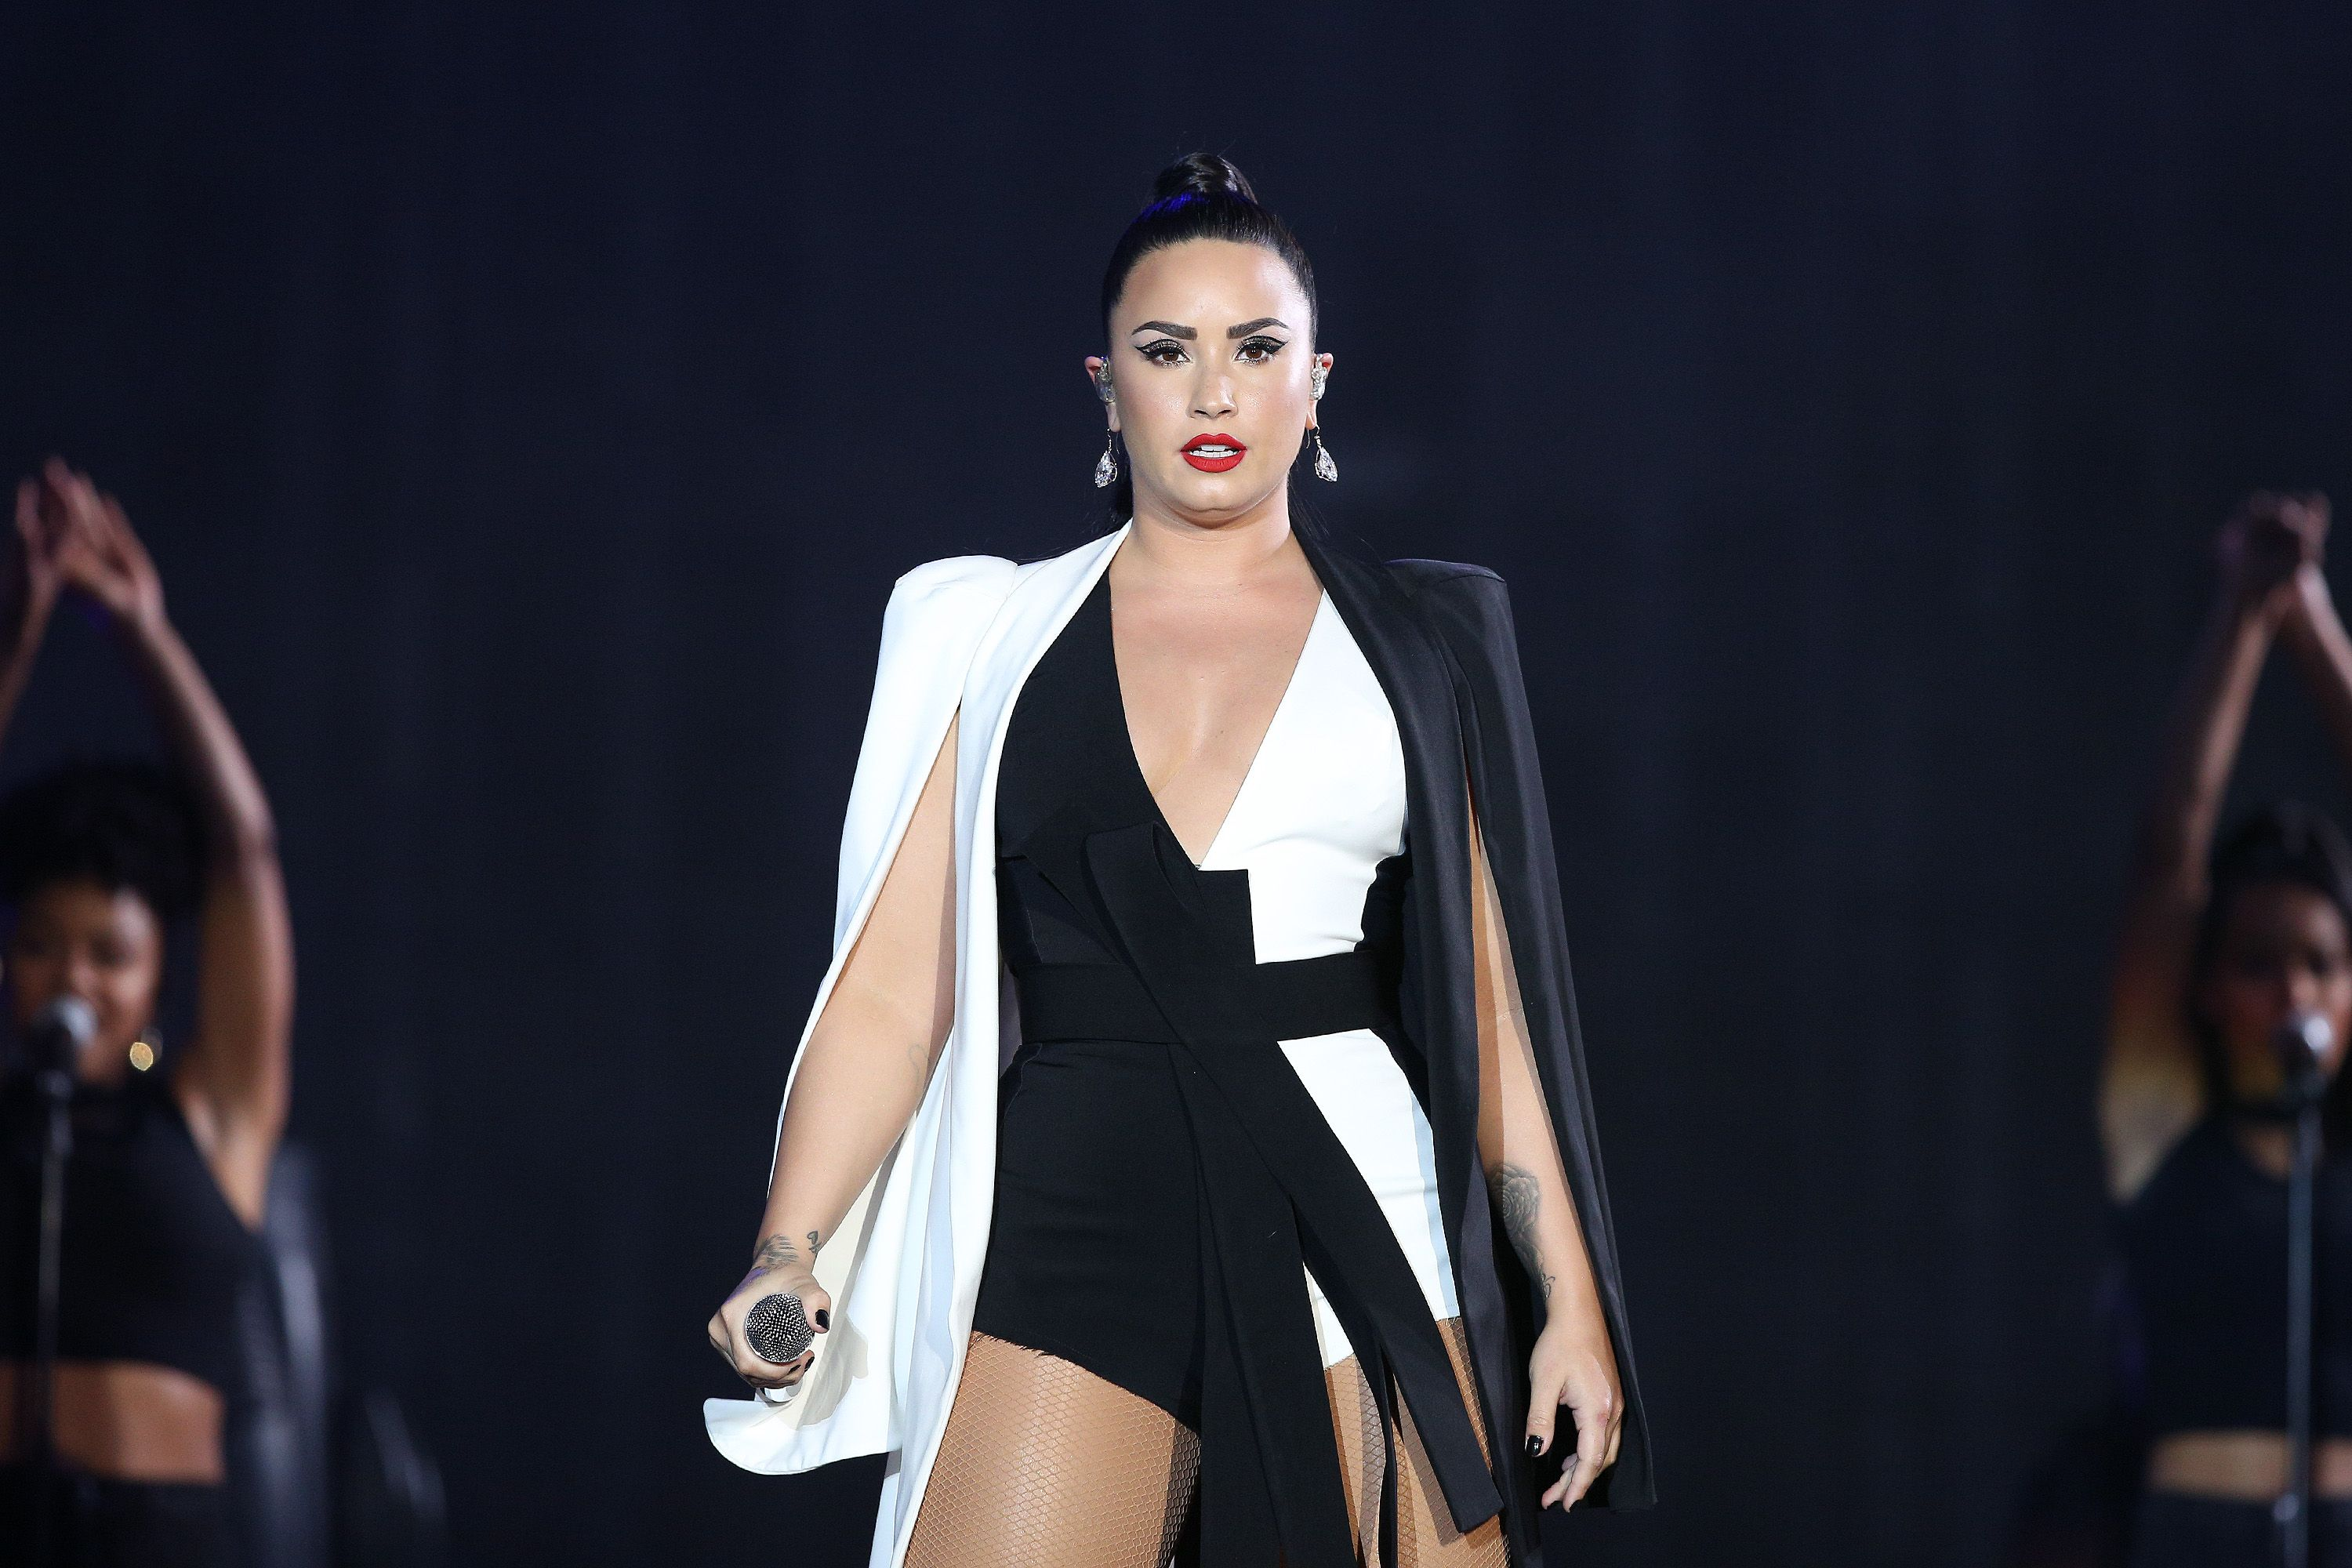 Demi Lovato dressed in black and white performs on stage.